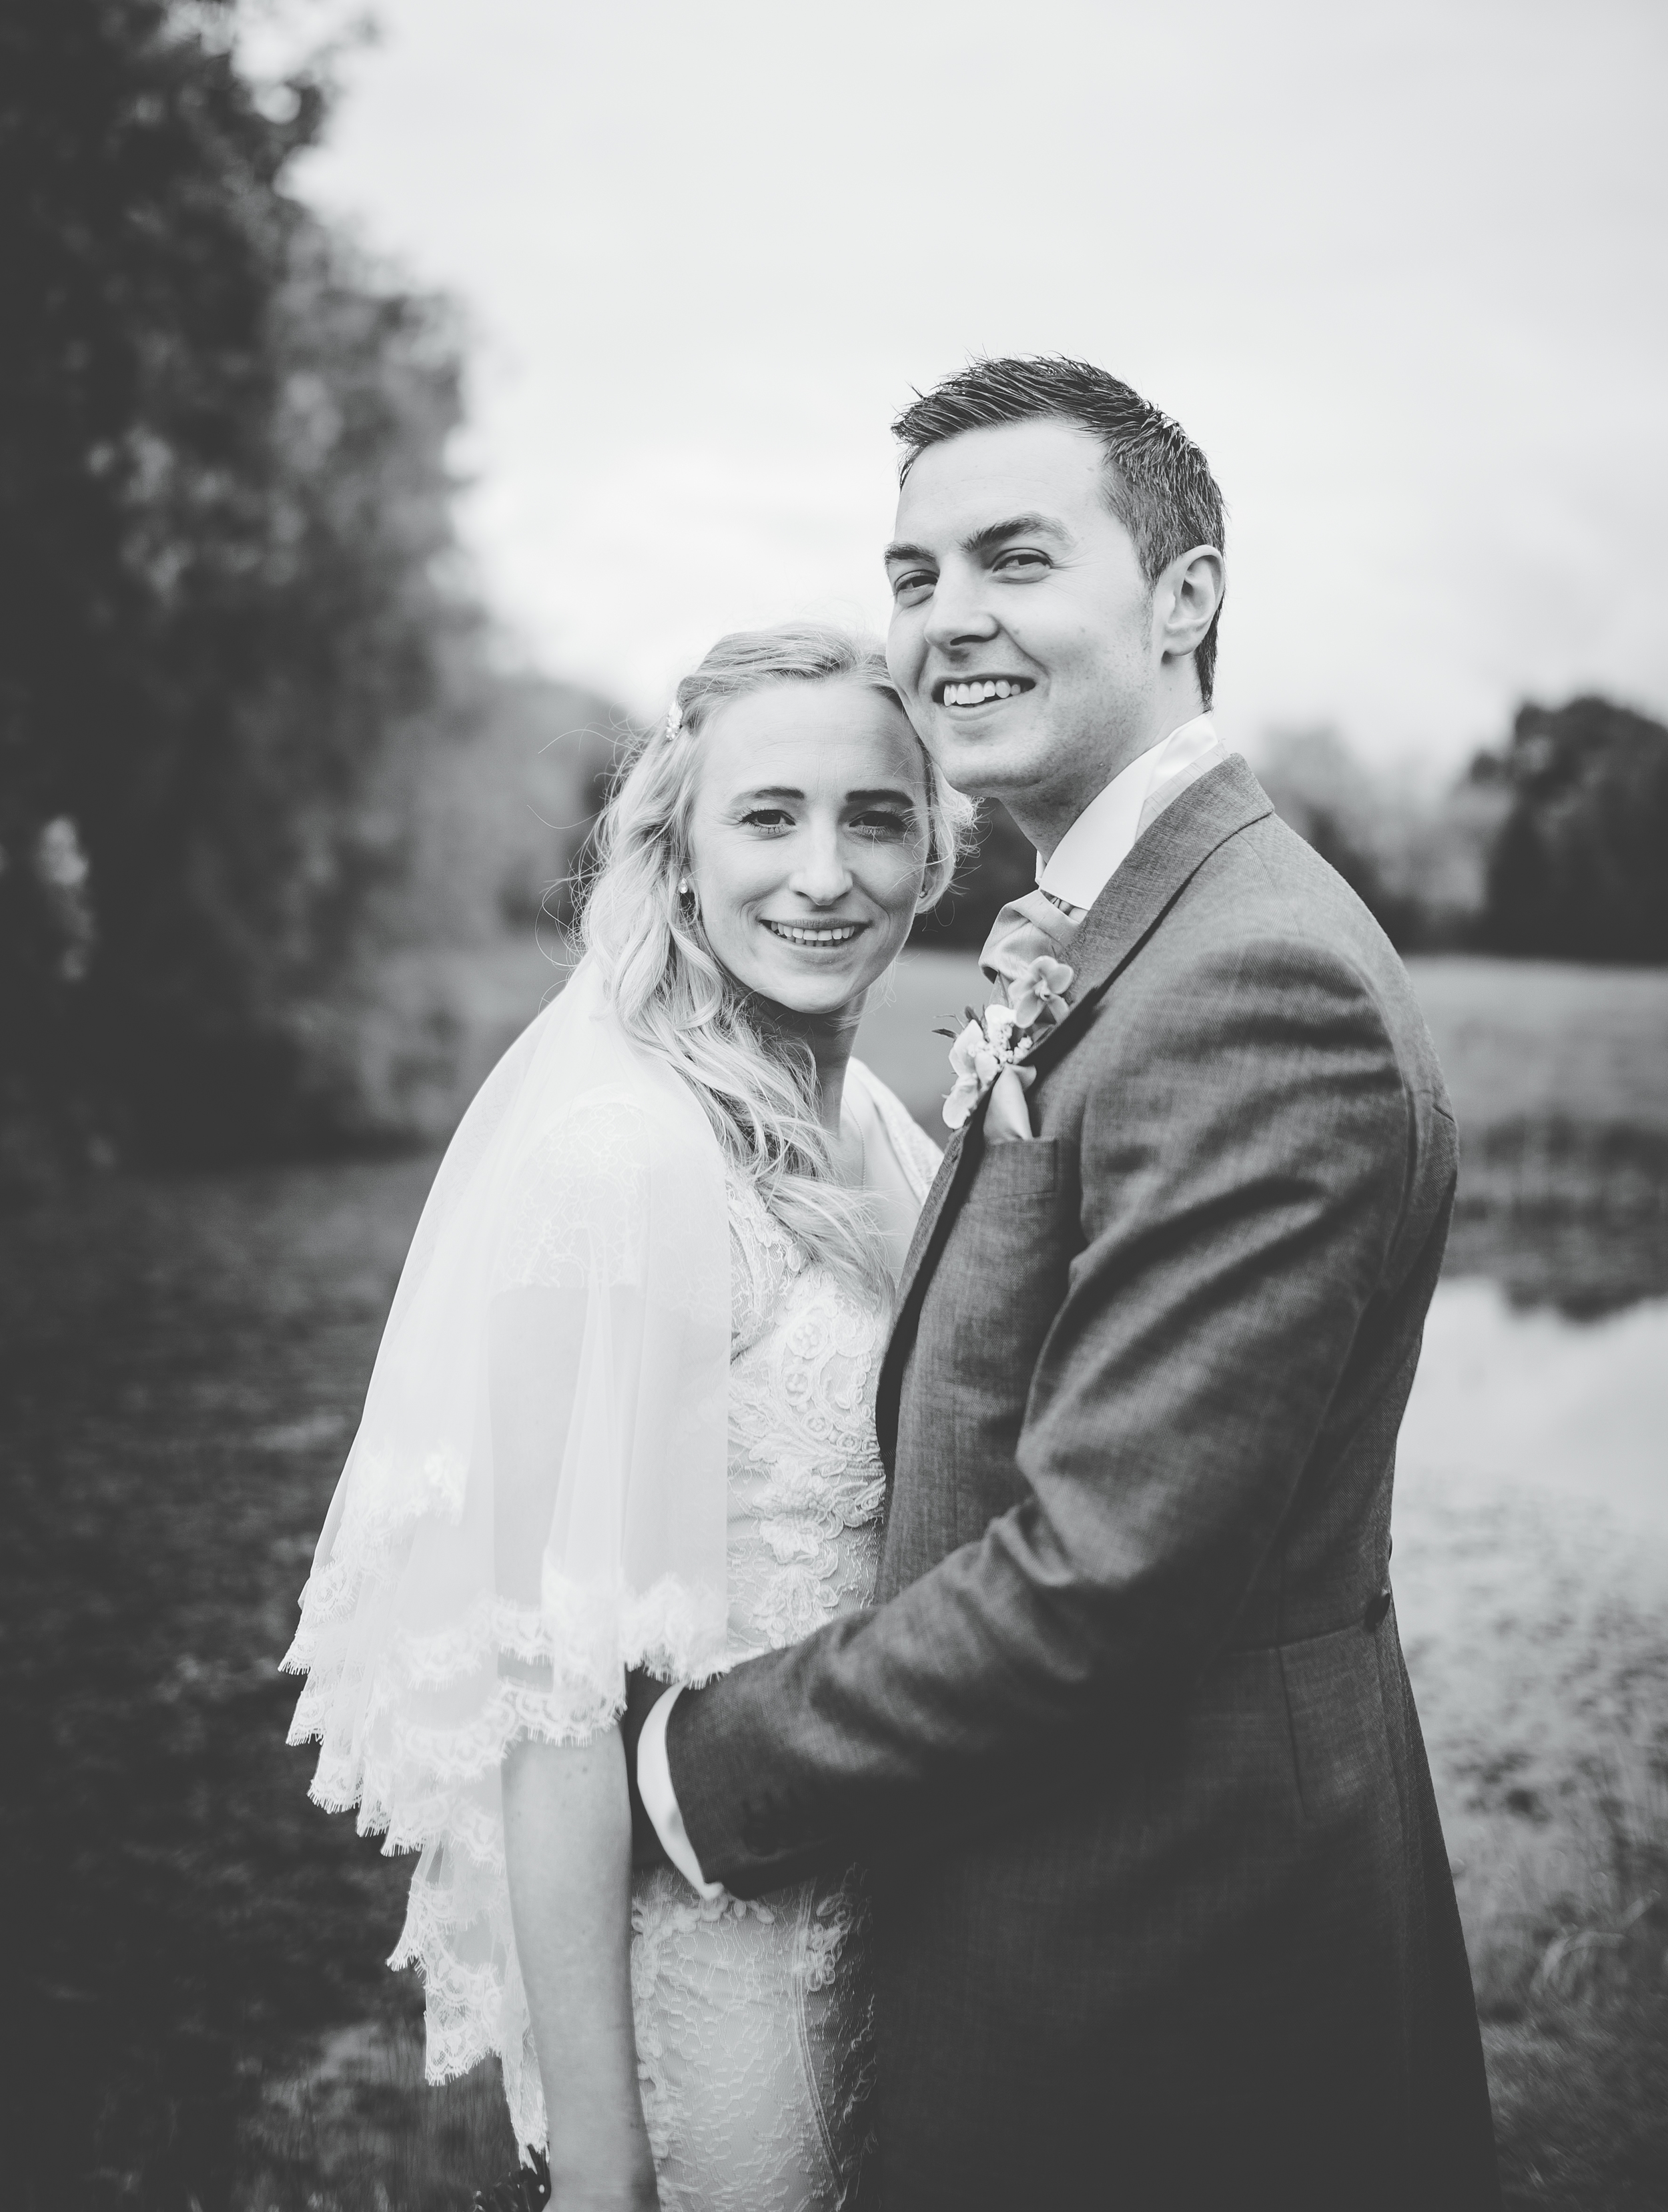 Oaktree of Peover wedding pictures - portrait of bride and groom